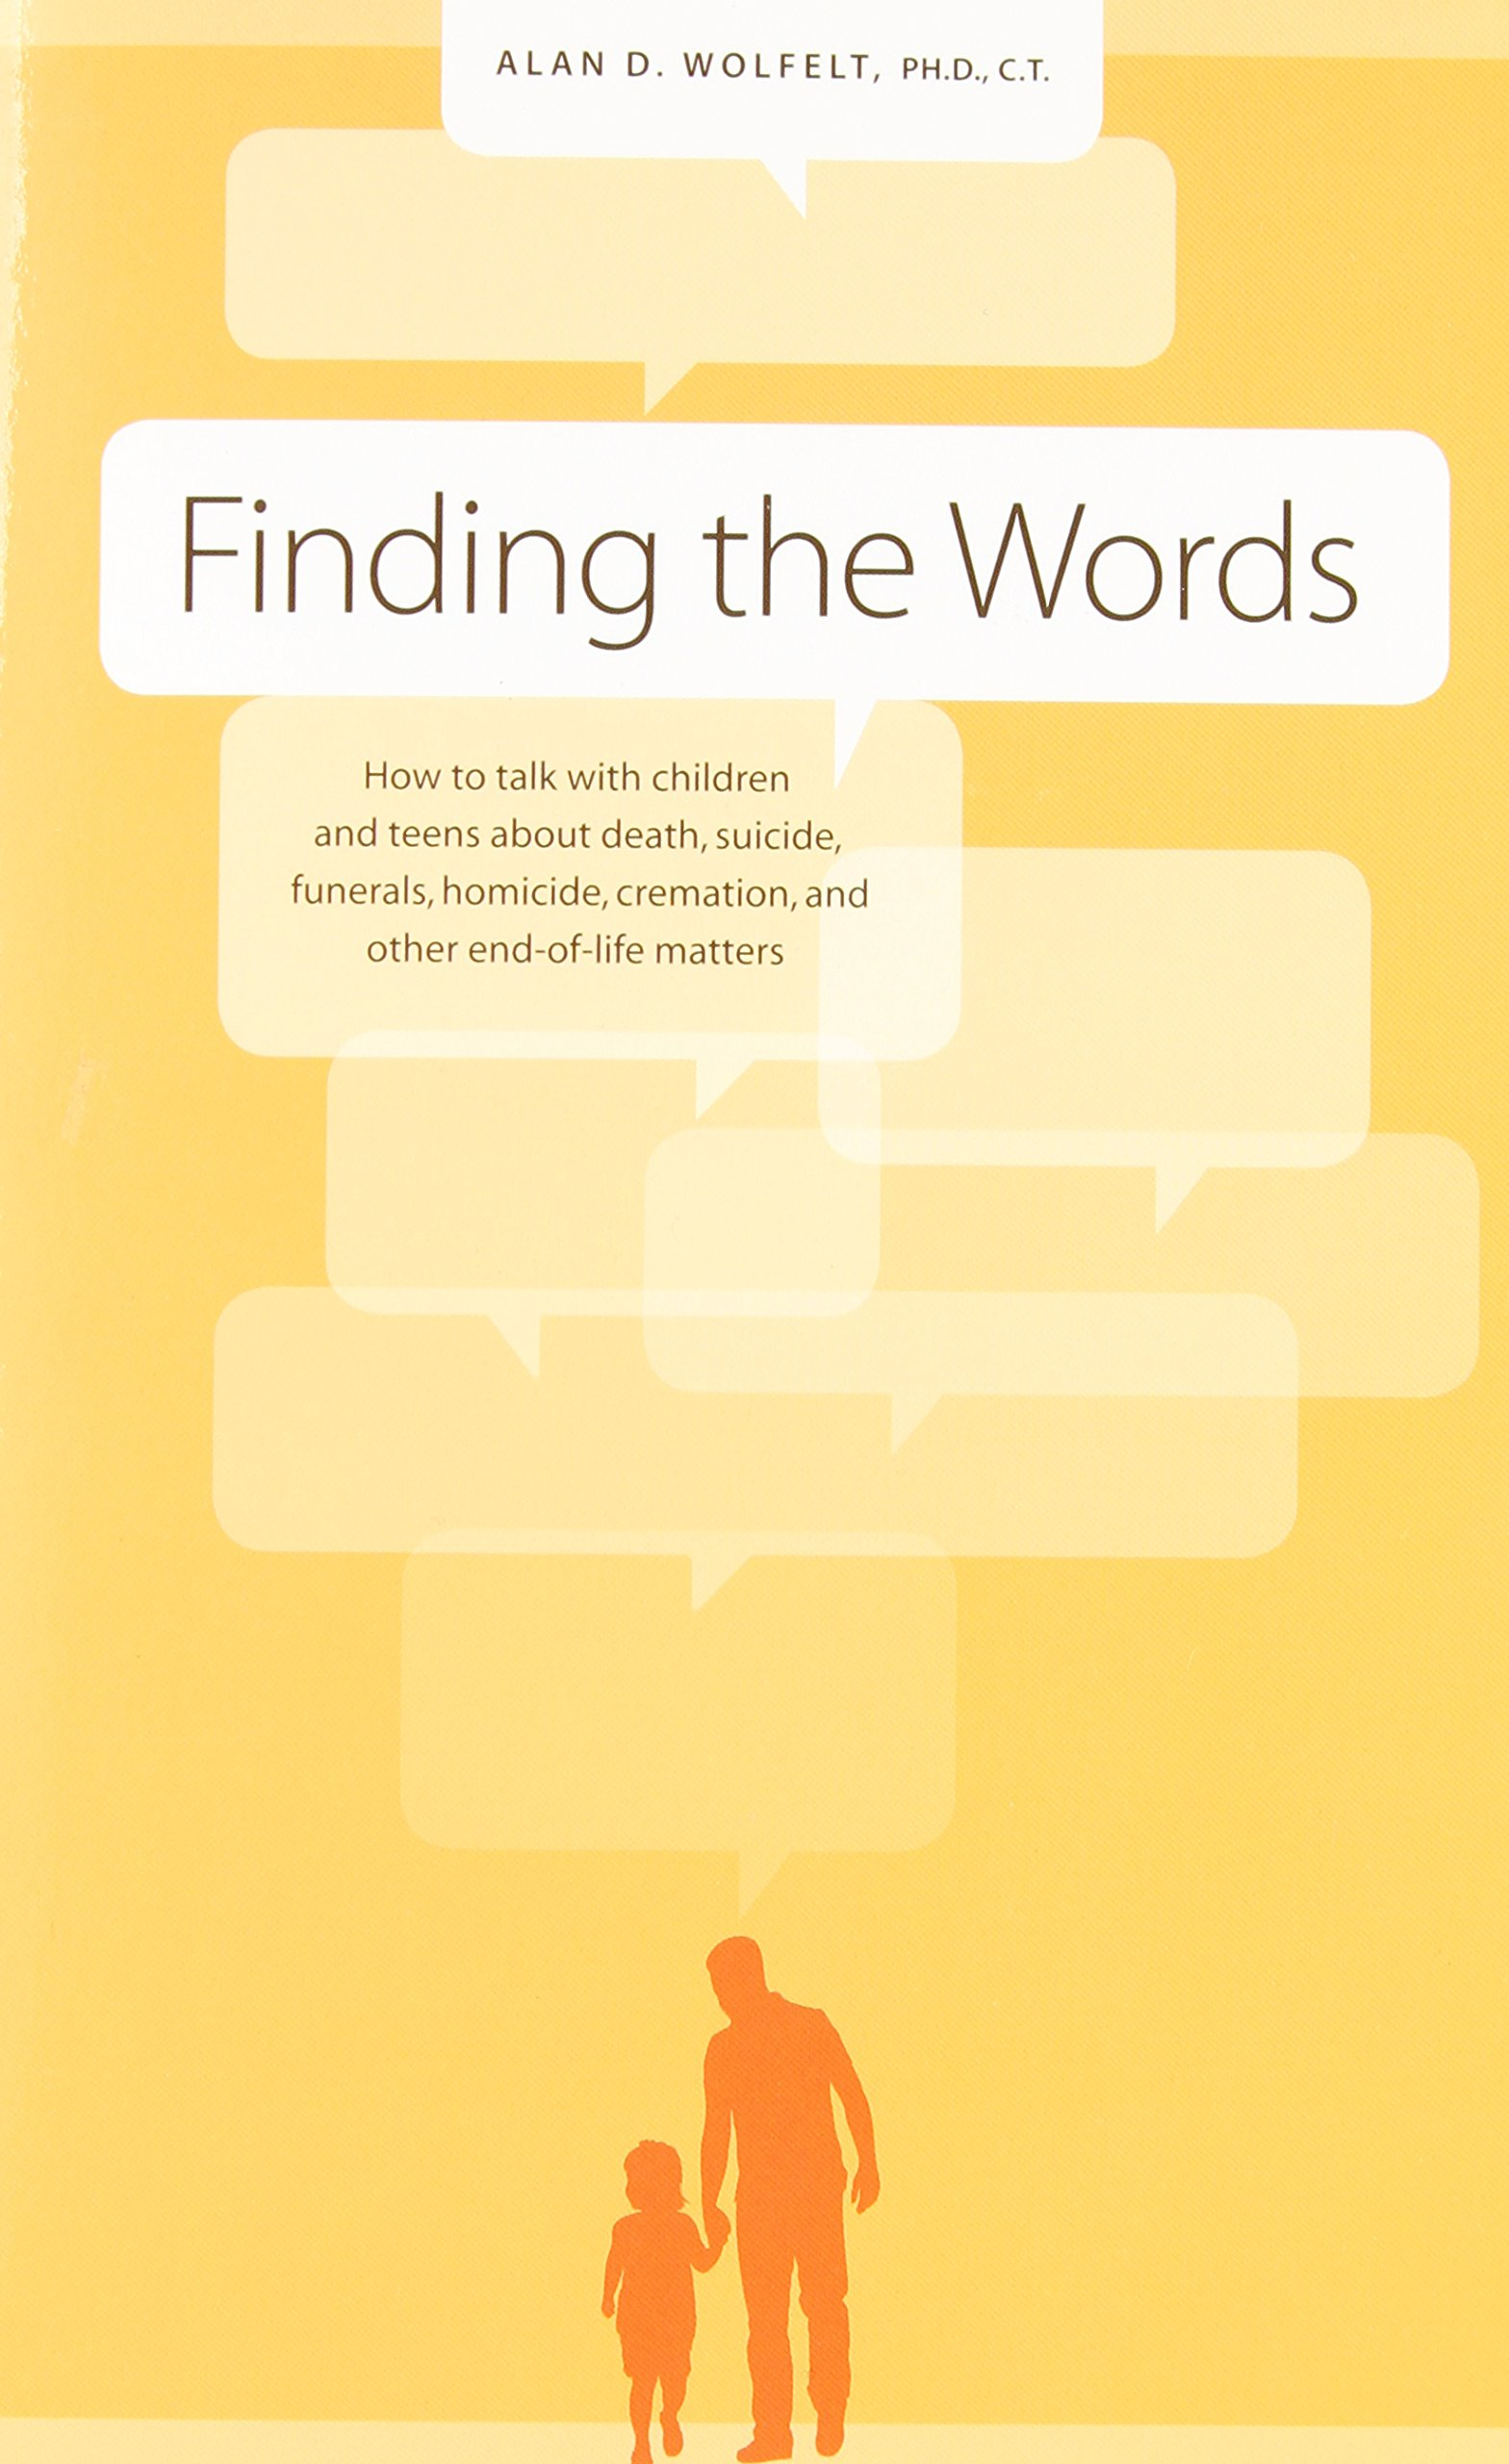 Read Online Finding the Words: How to Talk with Children and Teens about Death, Suicide, Homicide, Funerals, Cremation, and other End-of-Life Matters pdf epub